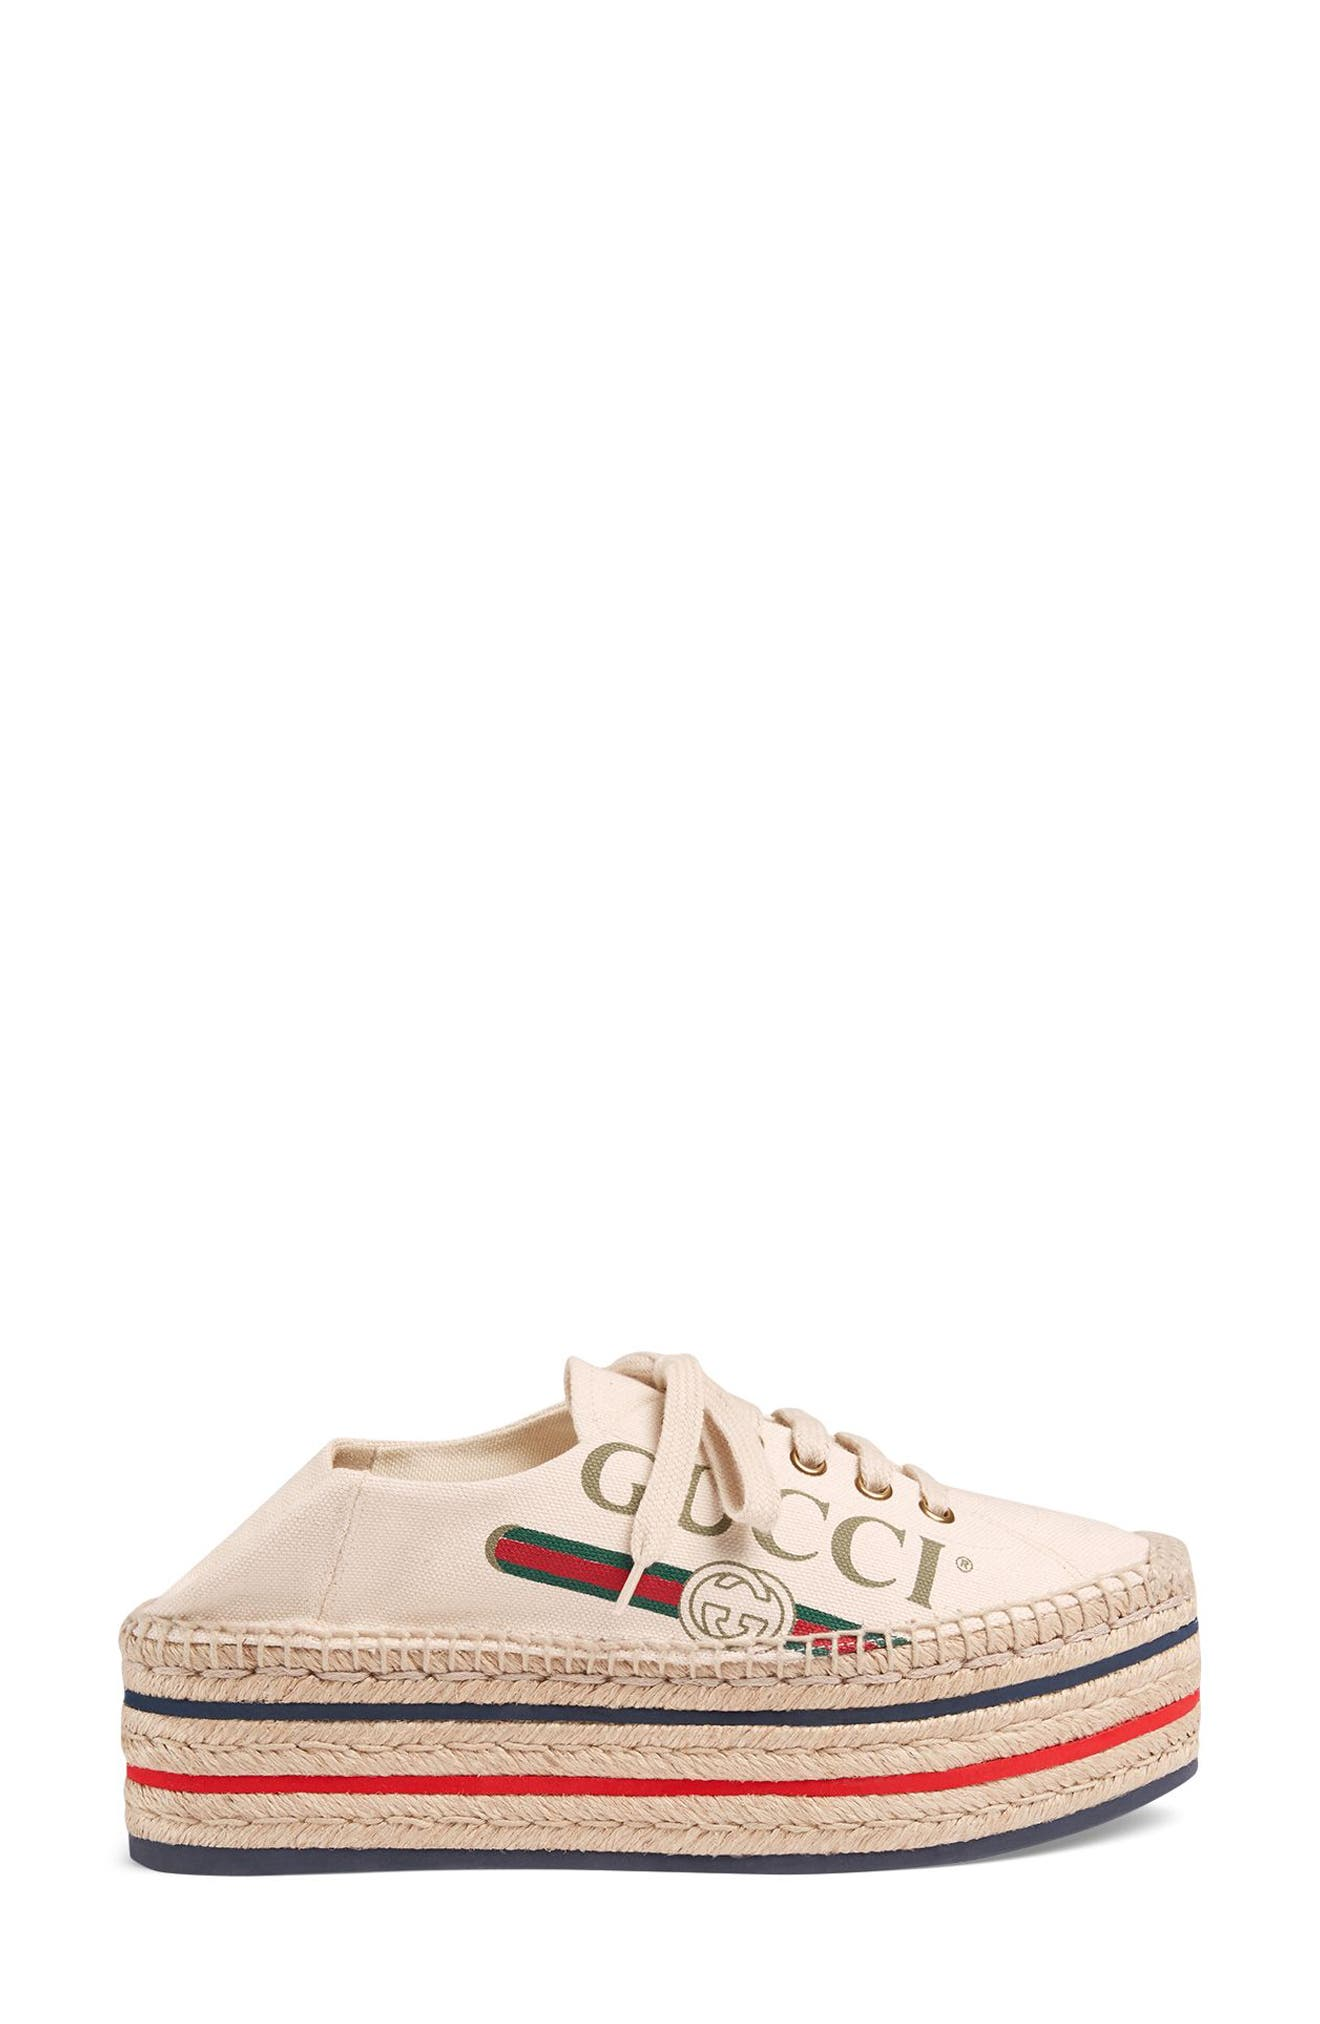 GUCCI, Convertible Logo Espadrille, Alternate thumbnail 2, color, IVORY